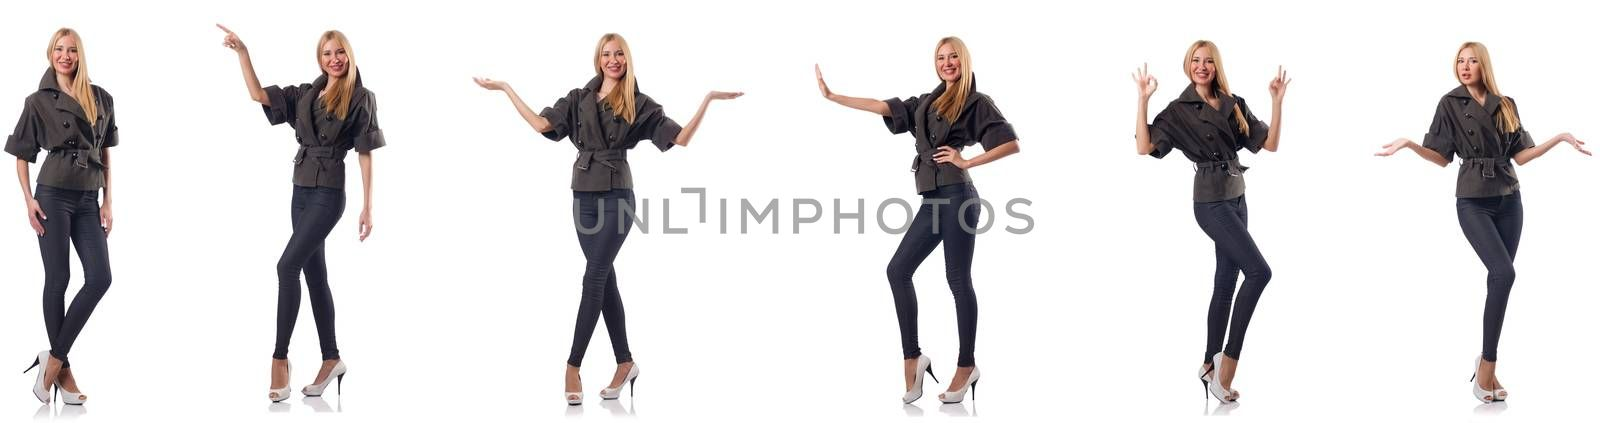 Woman in fashion clothing isolated on white